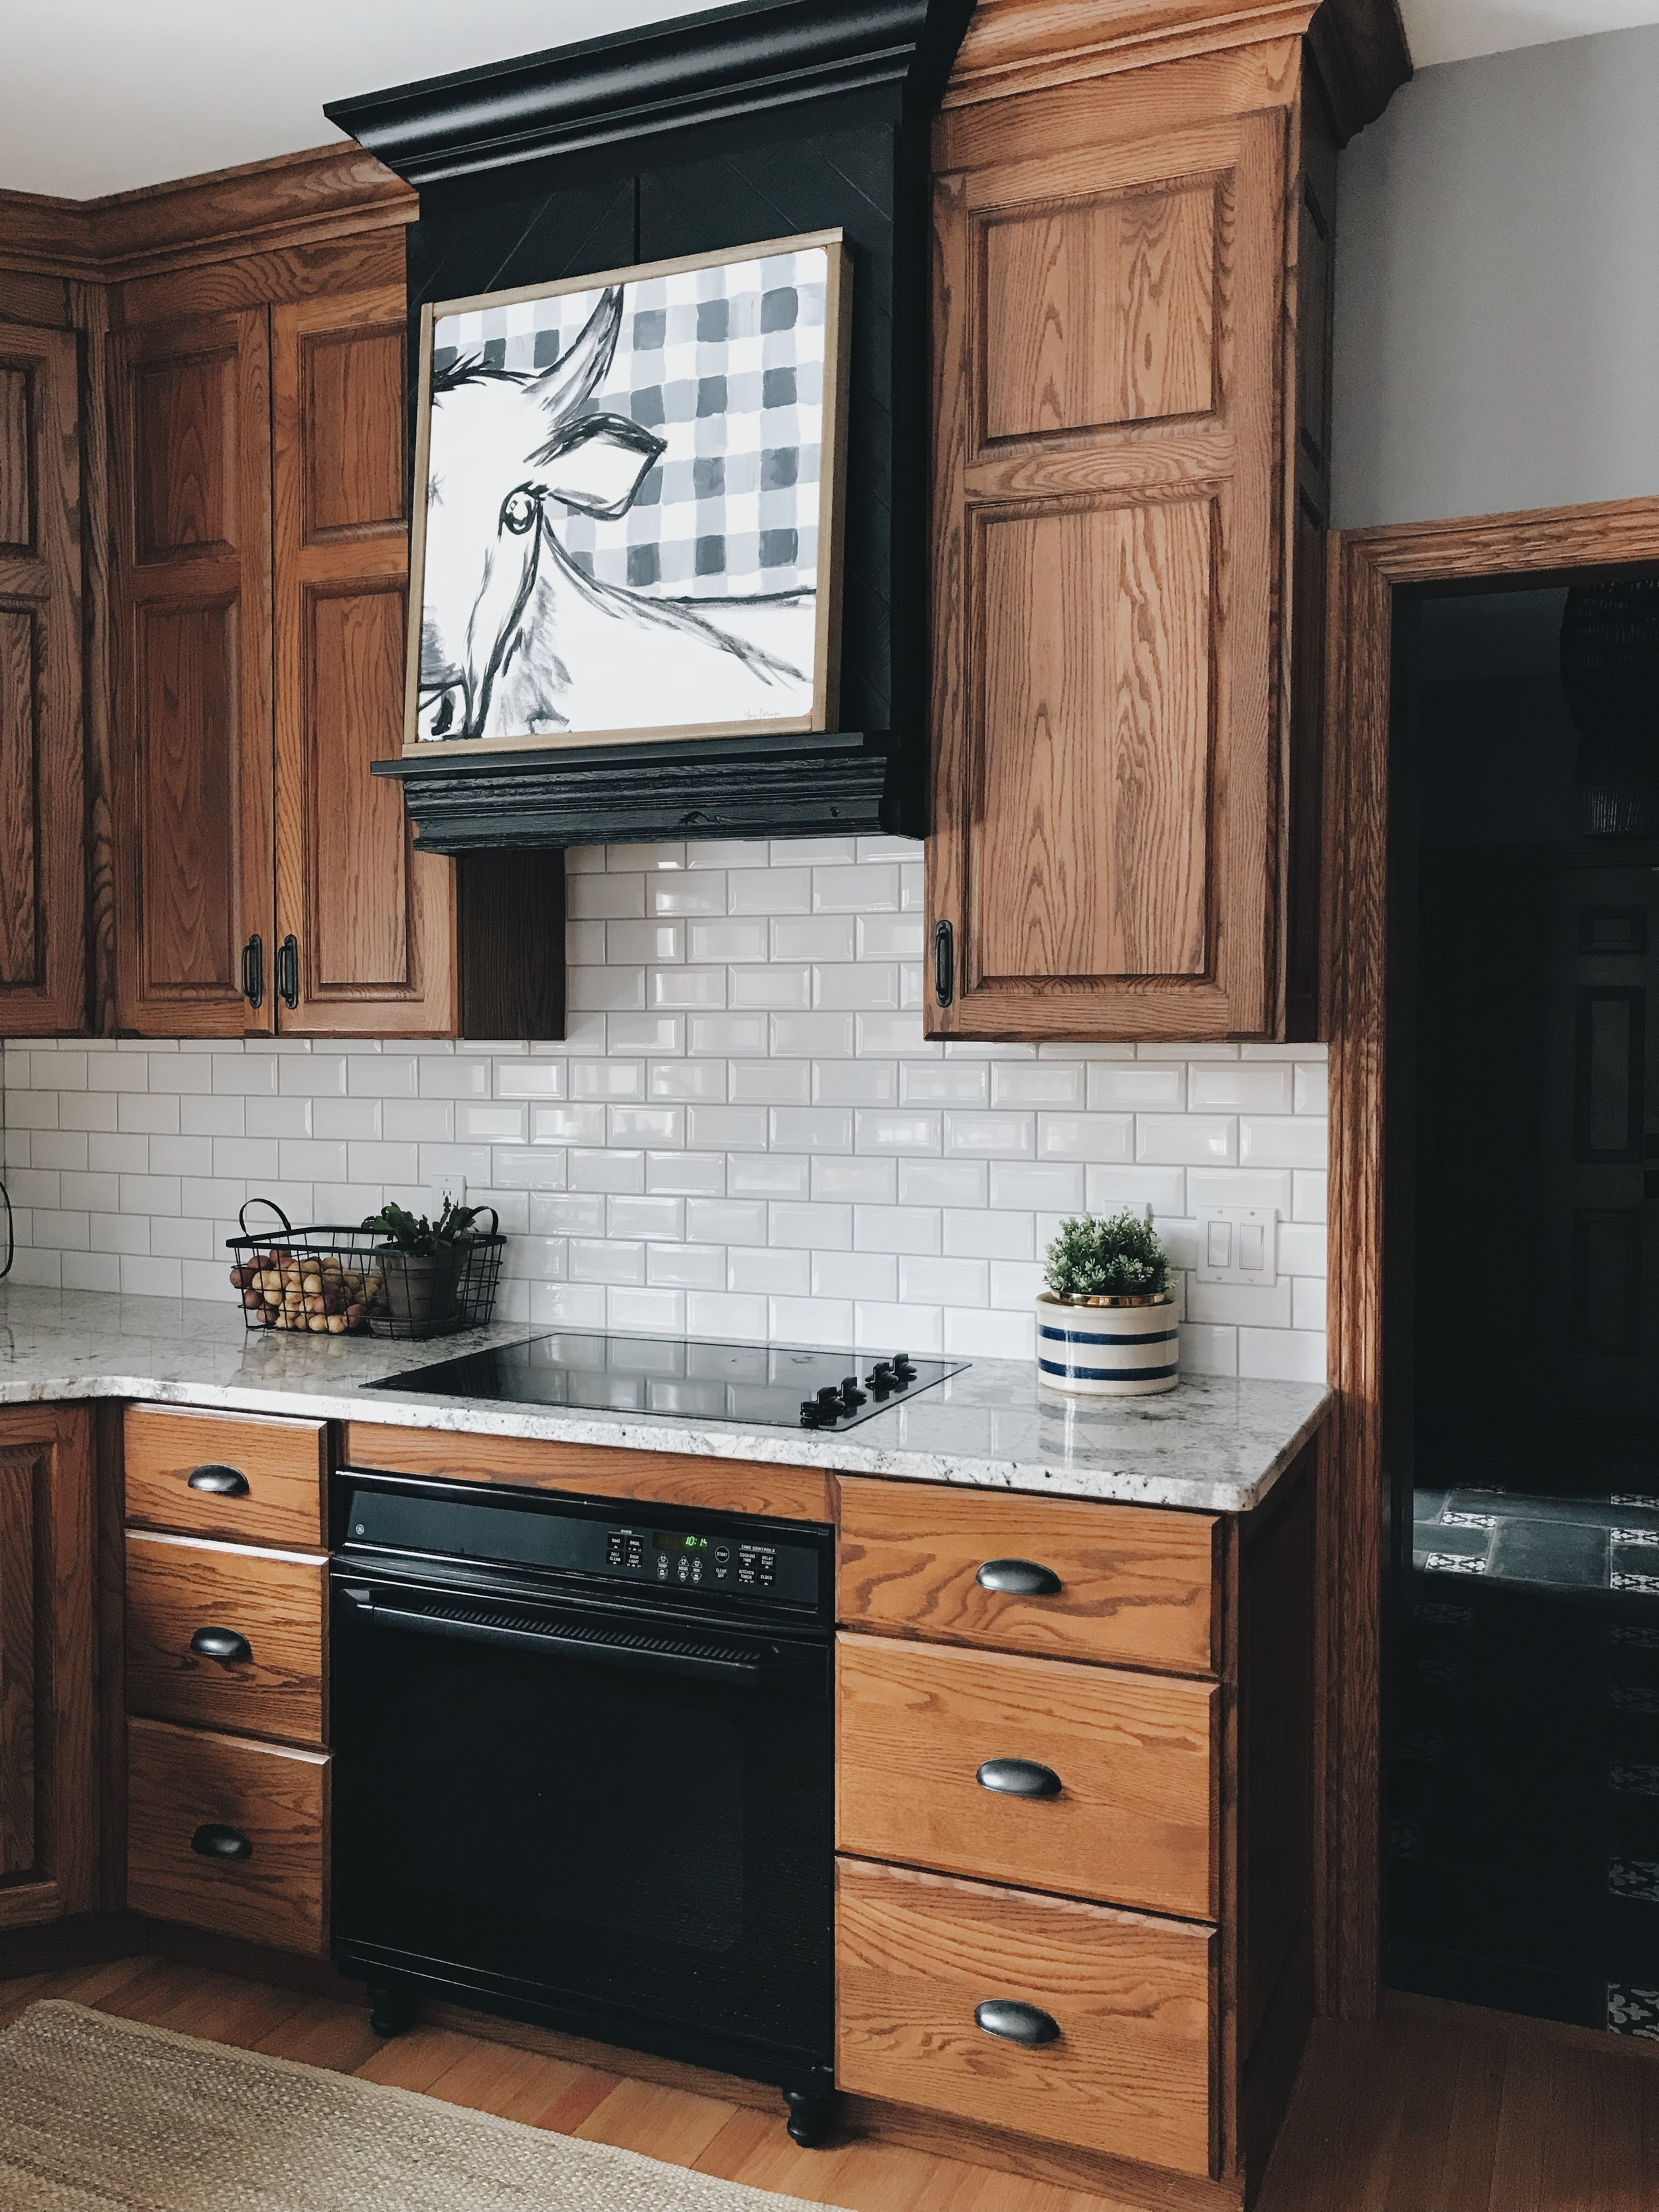 White Subway Tile And Oak Cabinets An Artist S Blog About Art Wallpaper Decor Margaritas And Everything You Ve Ever Wanted To Read Copper Corners